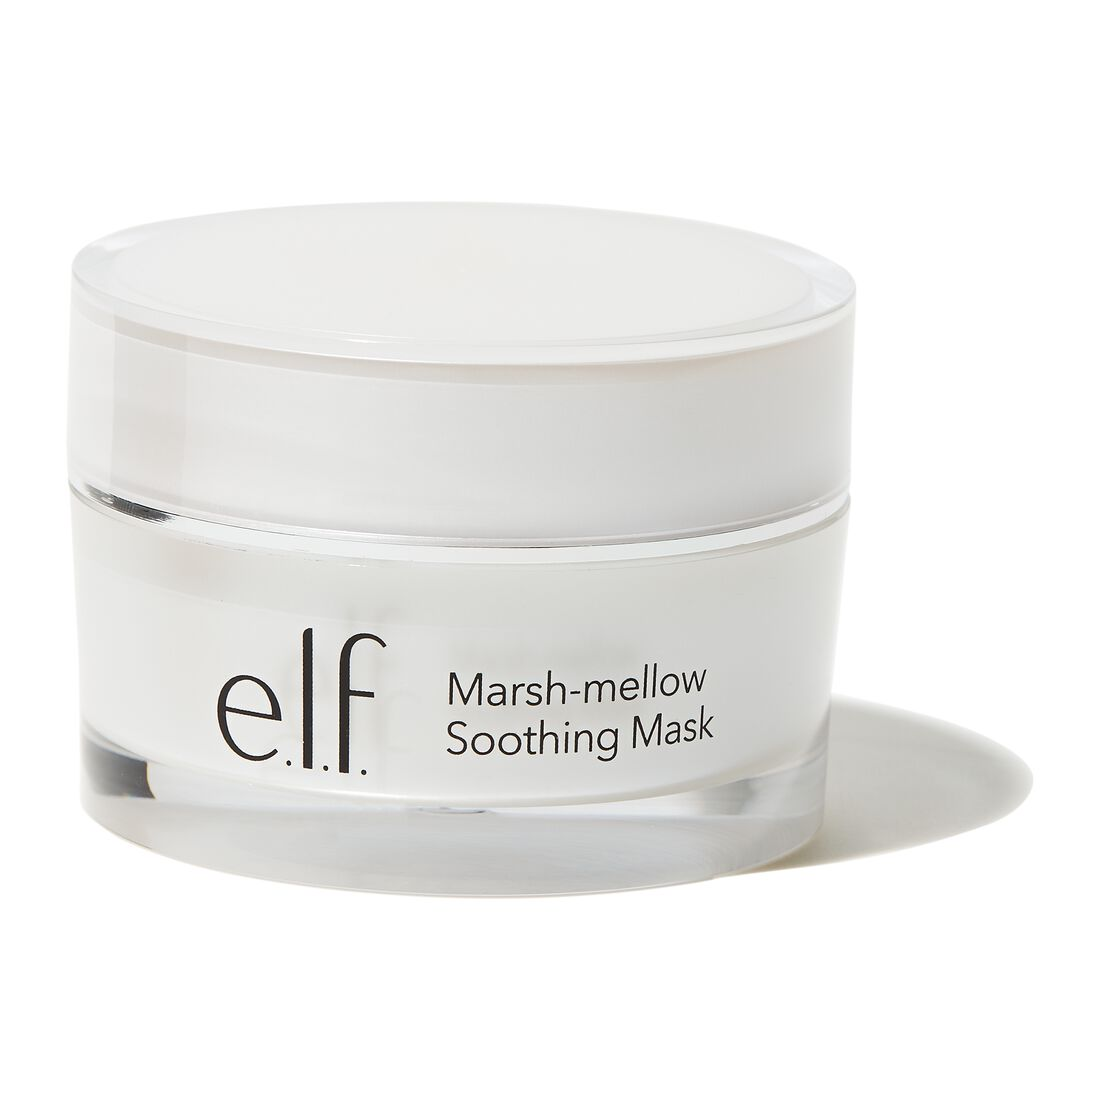 E.l.f Cosmetics - Marsh-mellow Soothing Mask